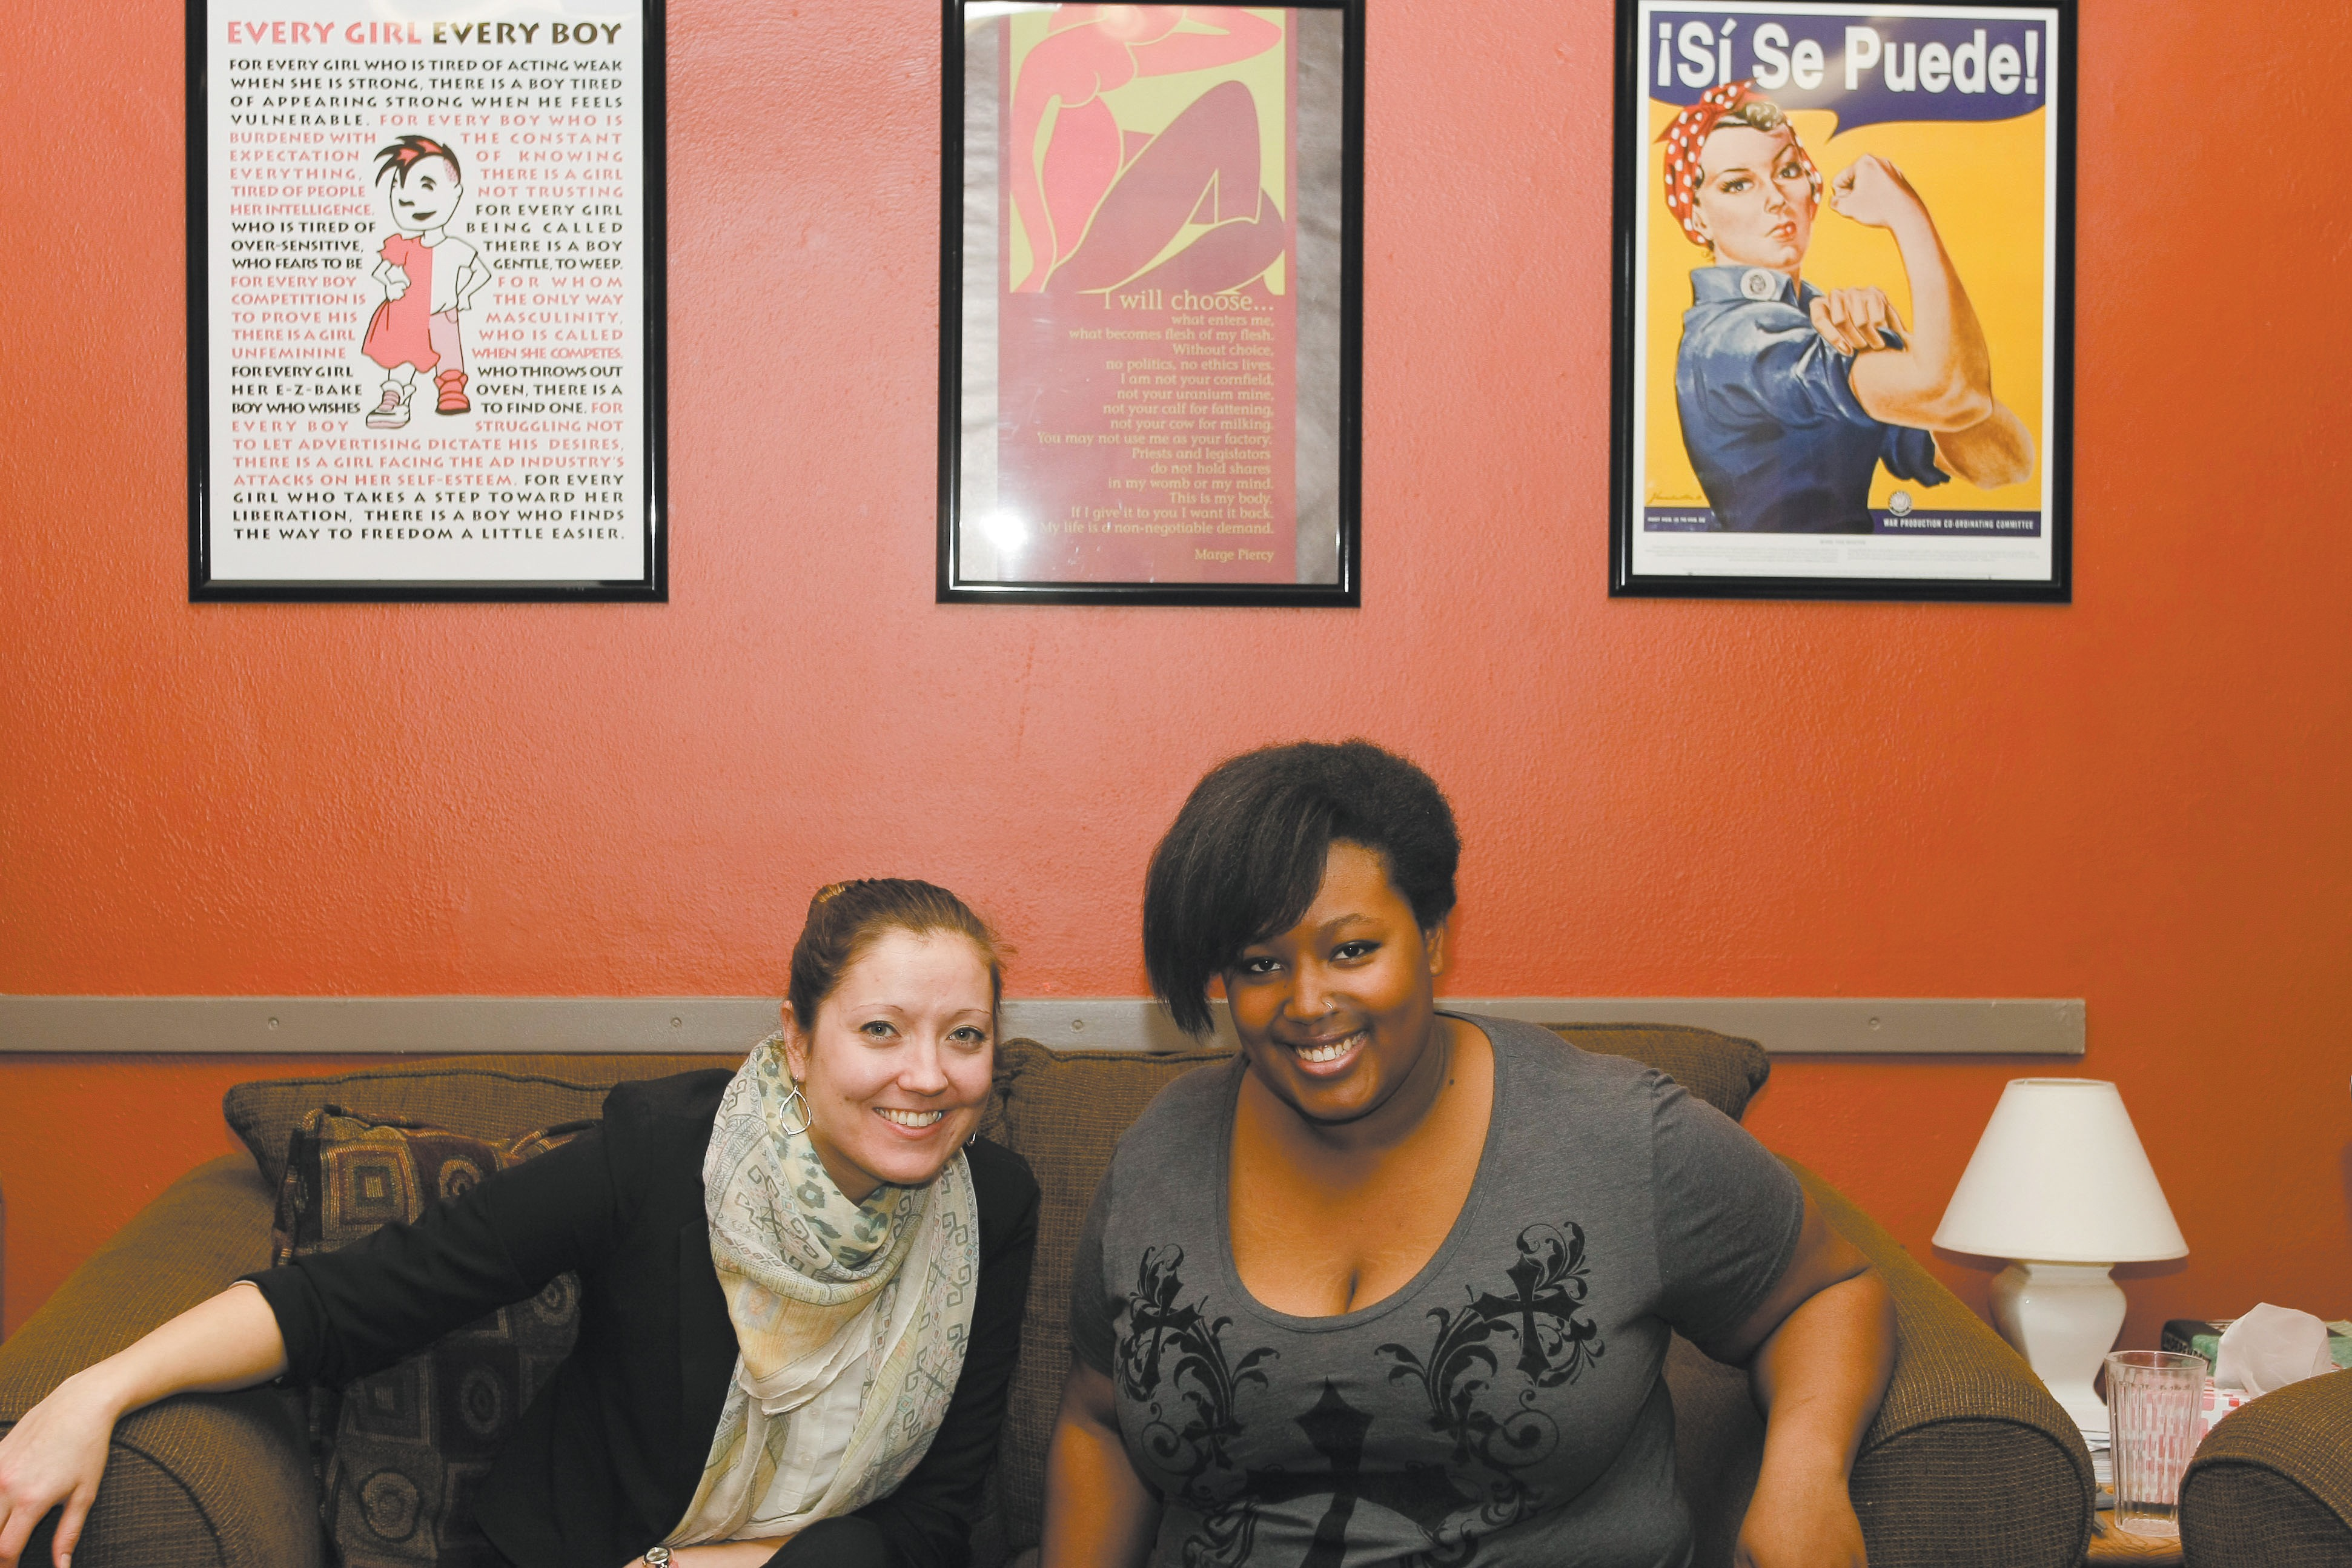 Bekah MillerMacPhee (left) with Jessy Forsmo-Shadid (right).